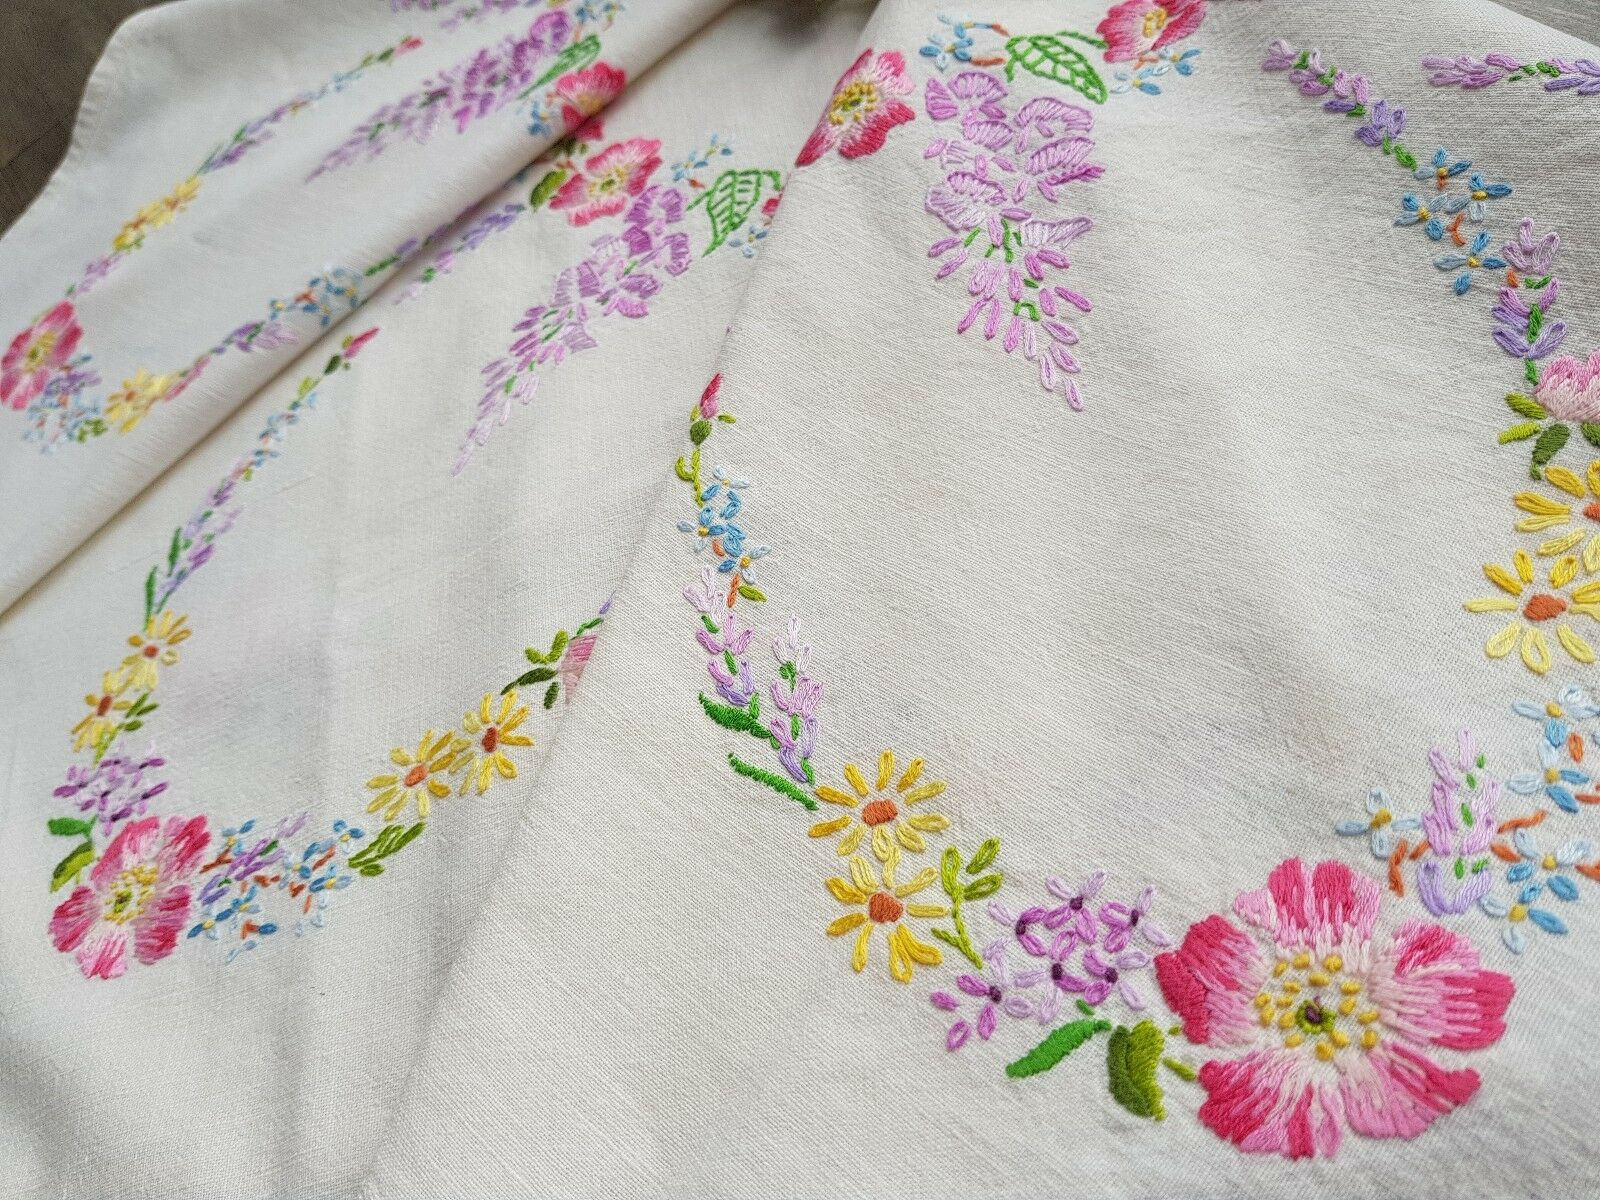 BEAUTIFUL VINTAGE Hand Embroidered Tablecloth With Flowers - U00a311.50 | PicClick UK